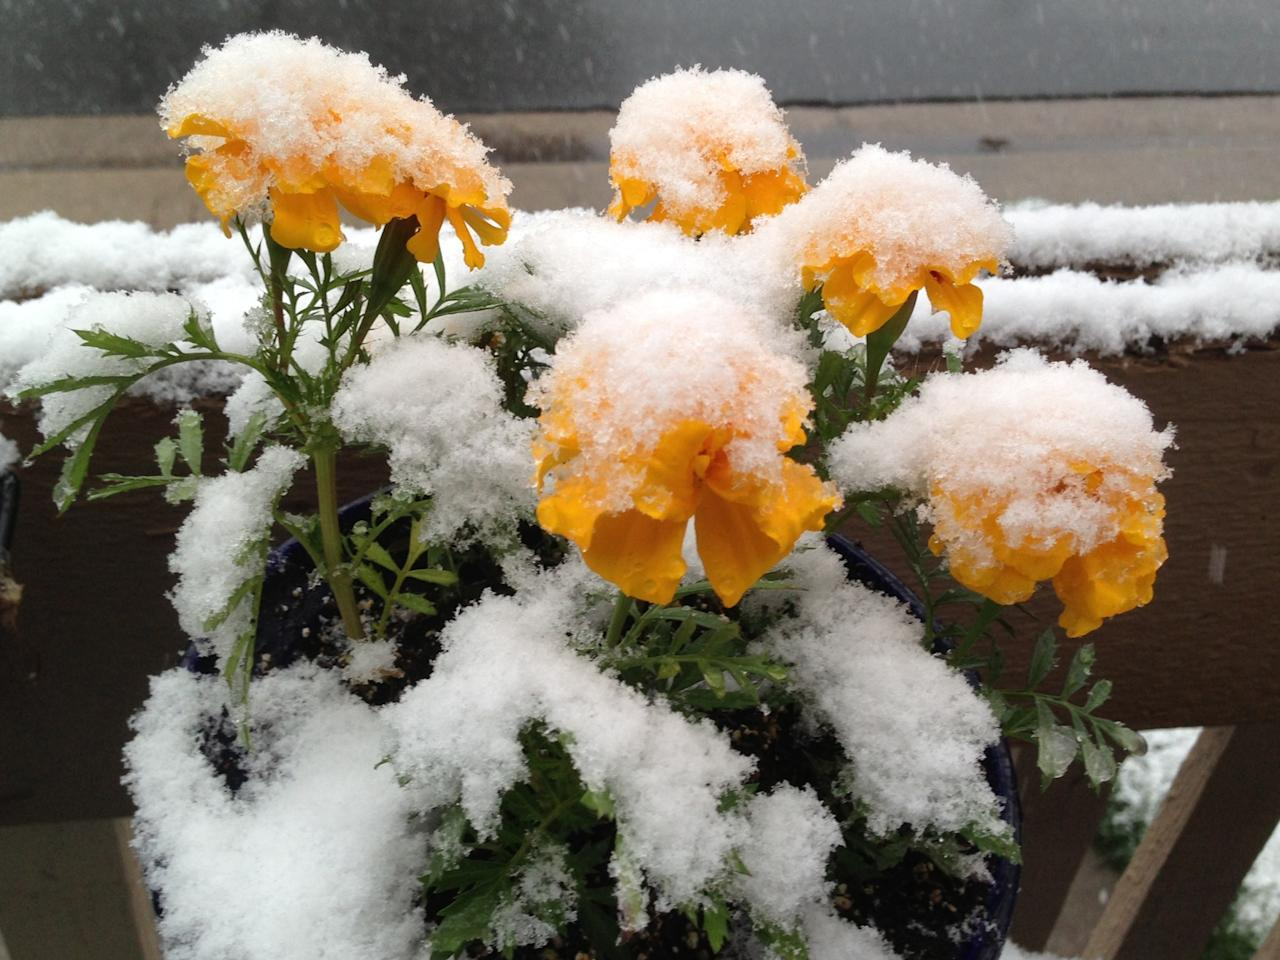 Snow clings to flowers in Denver on Wednesday May 1, 2013. As much as a foot of snow is forecast for some areas of Colorado. (AP Photo/Ed Andrieski)